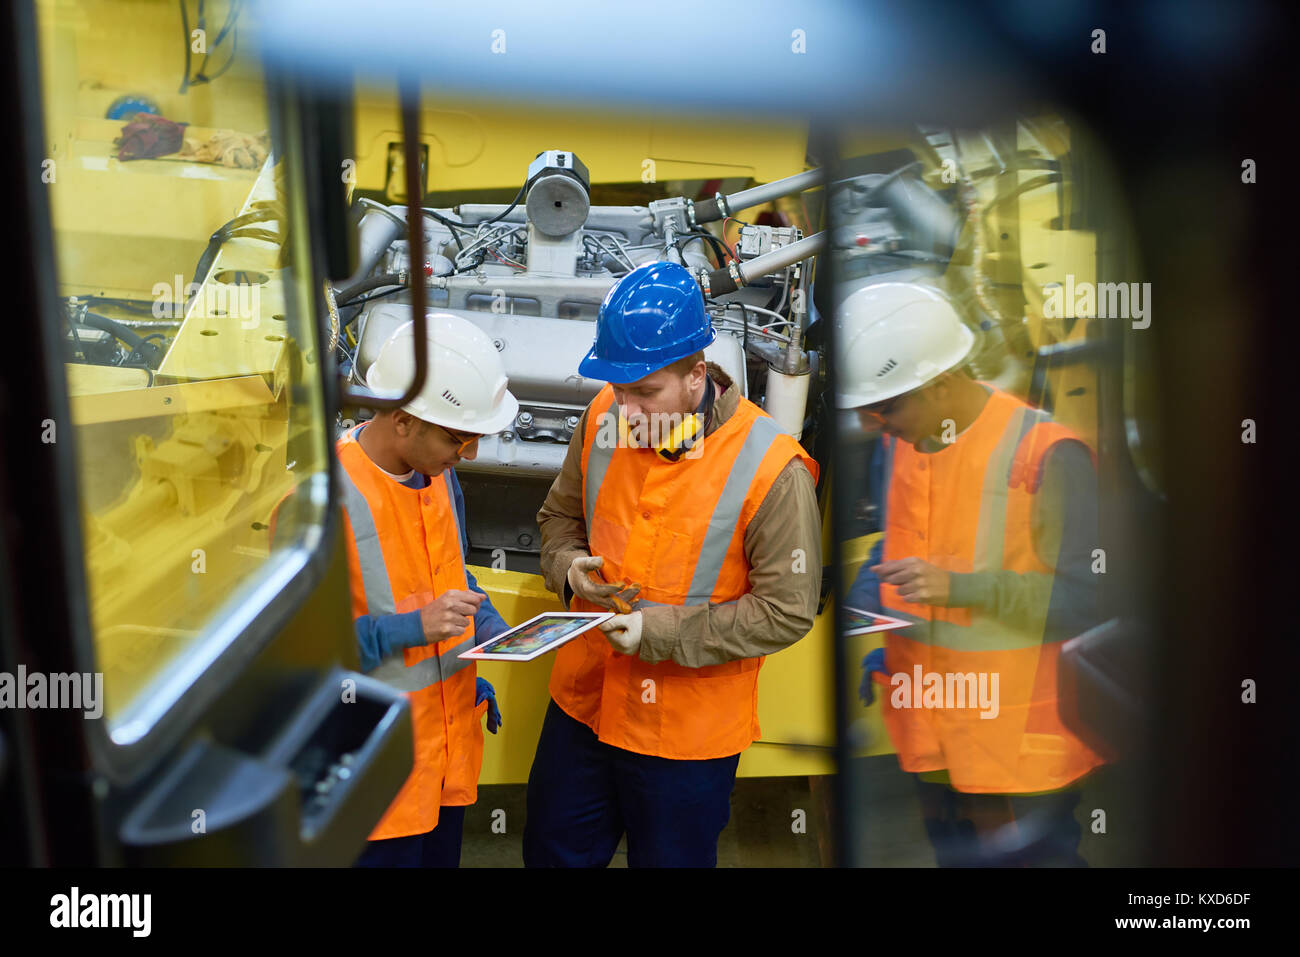 Productive Discussion of Industrial Engineers - Stock Image